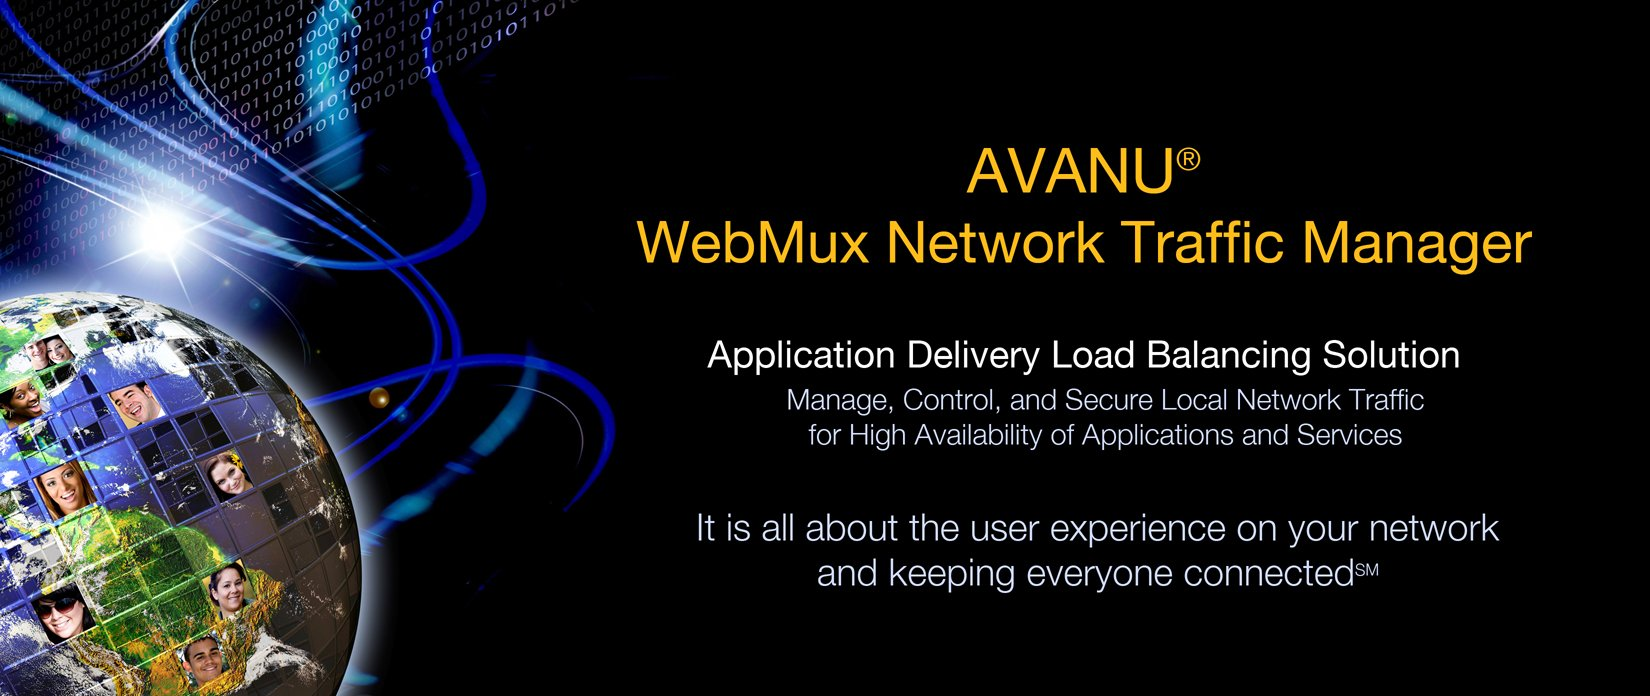 AVANU WebMux Application Delivery Load Balancing Solution